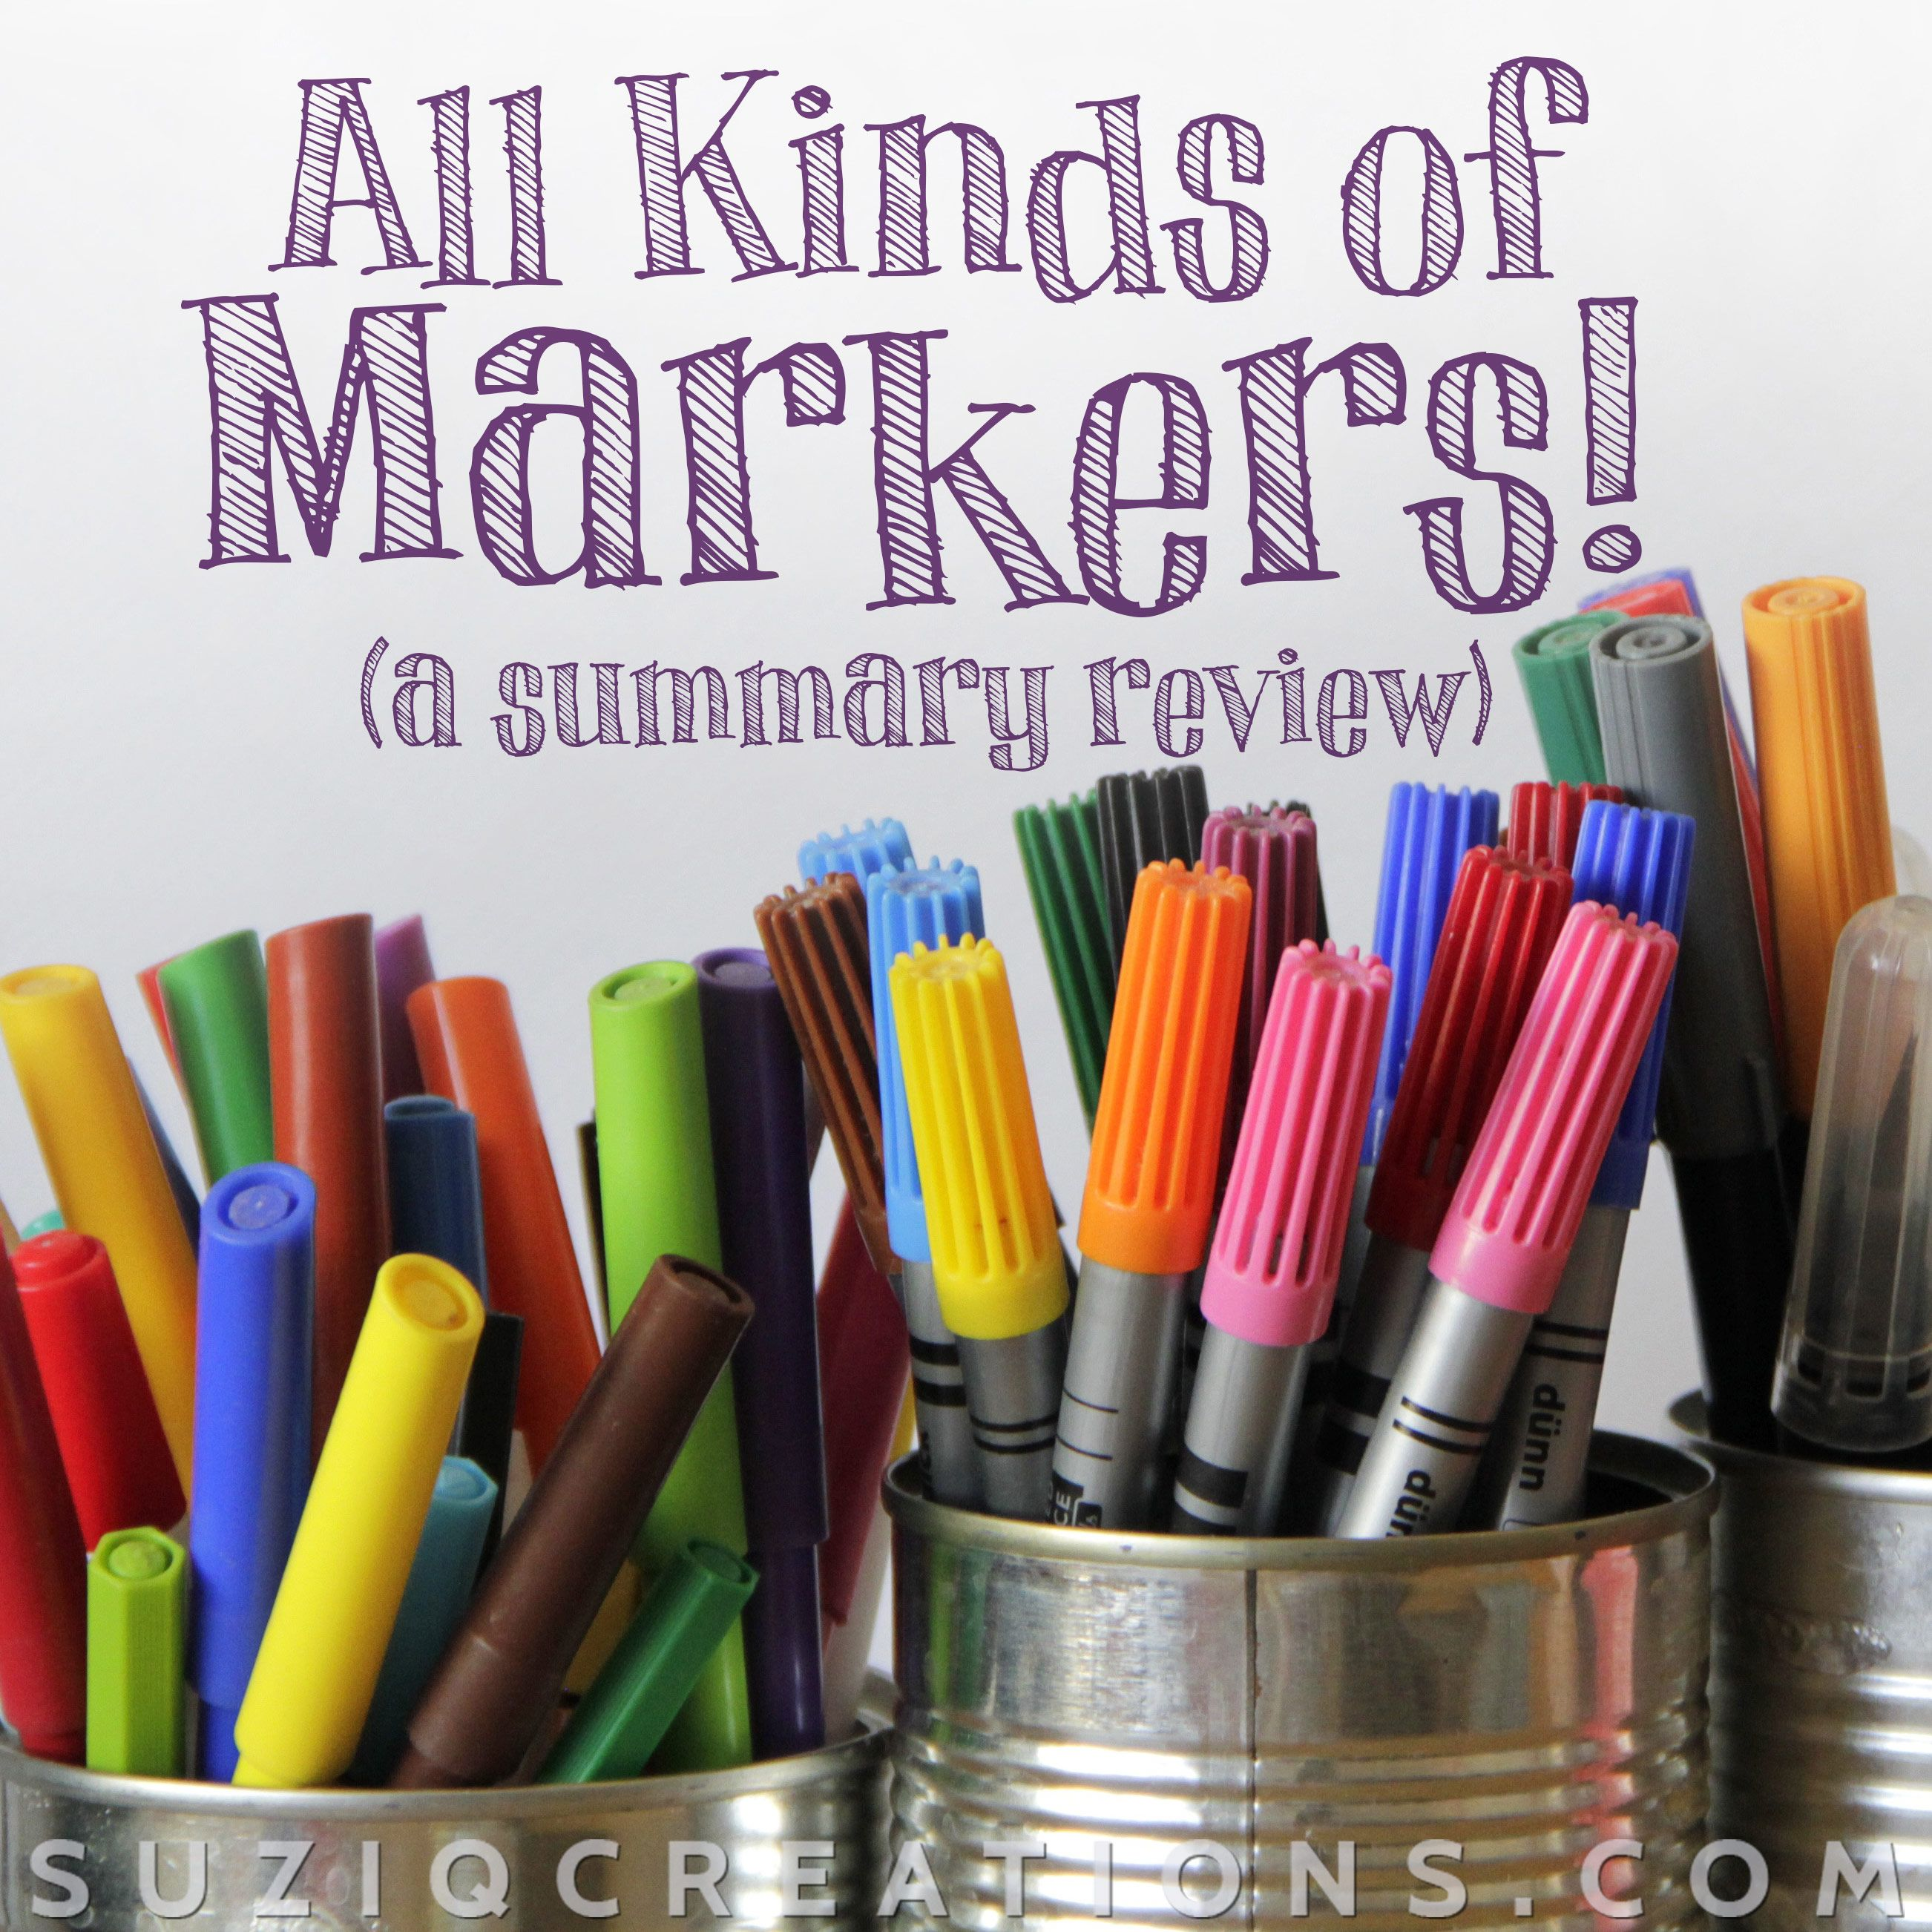 - Marker Types For Adult Coloring Books Adult Coloring Pens, Adult